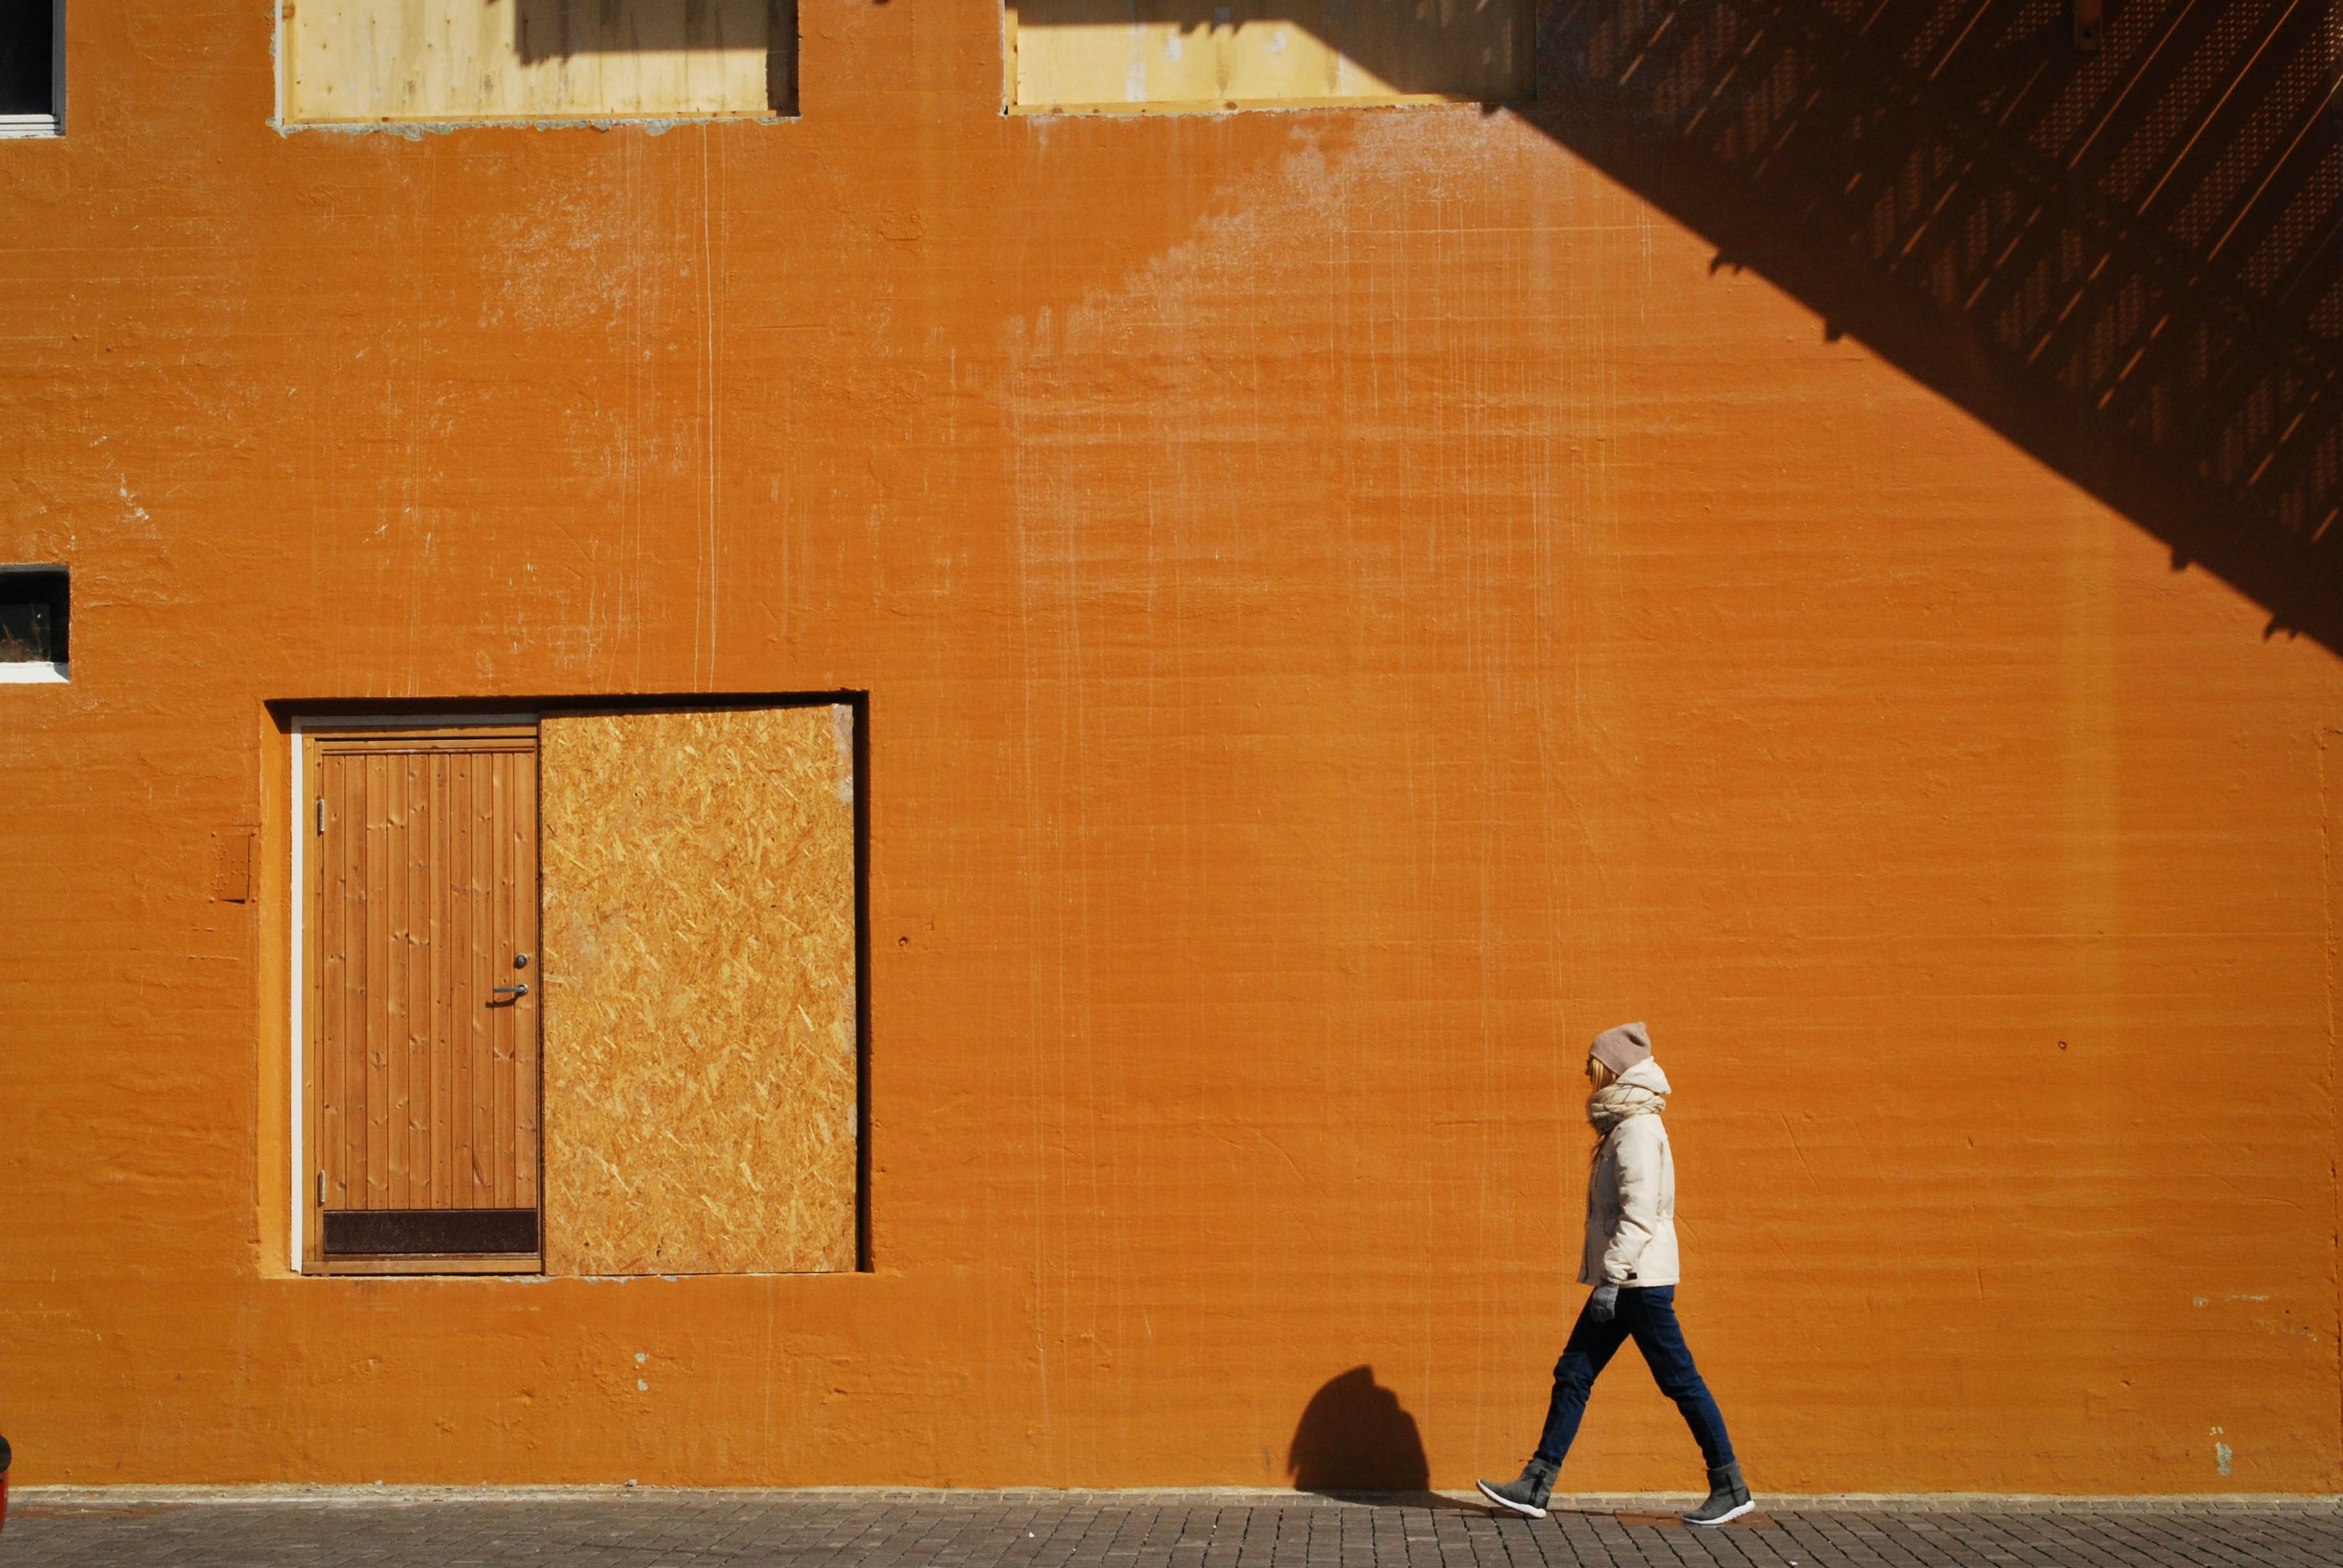 man walking beside orange building at daytime